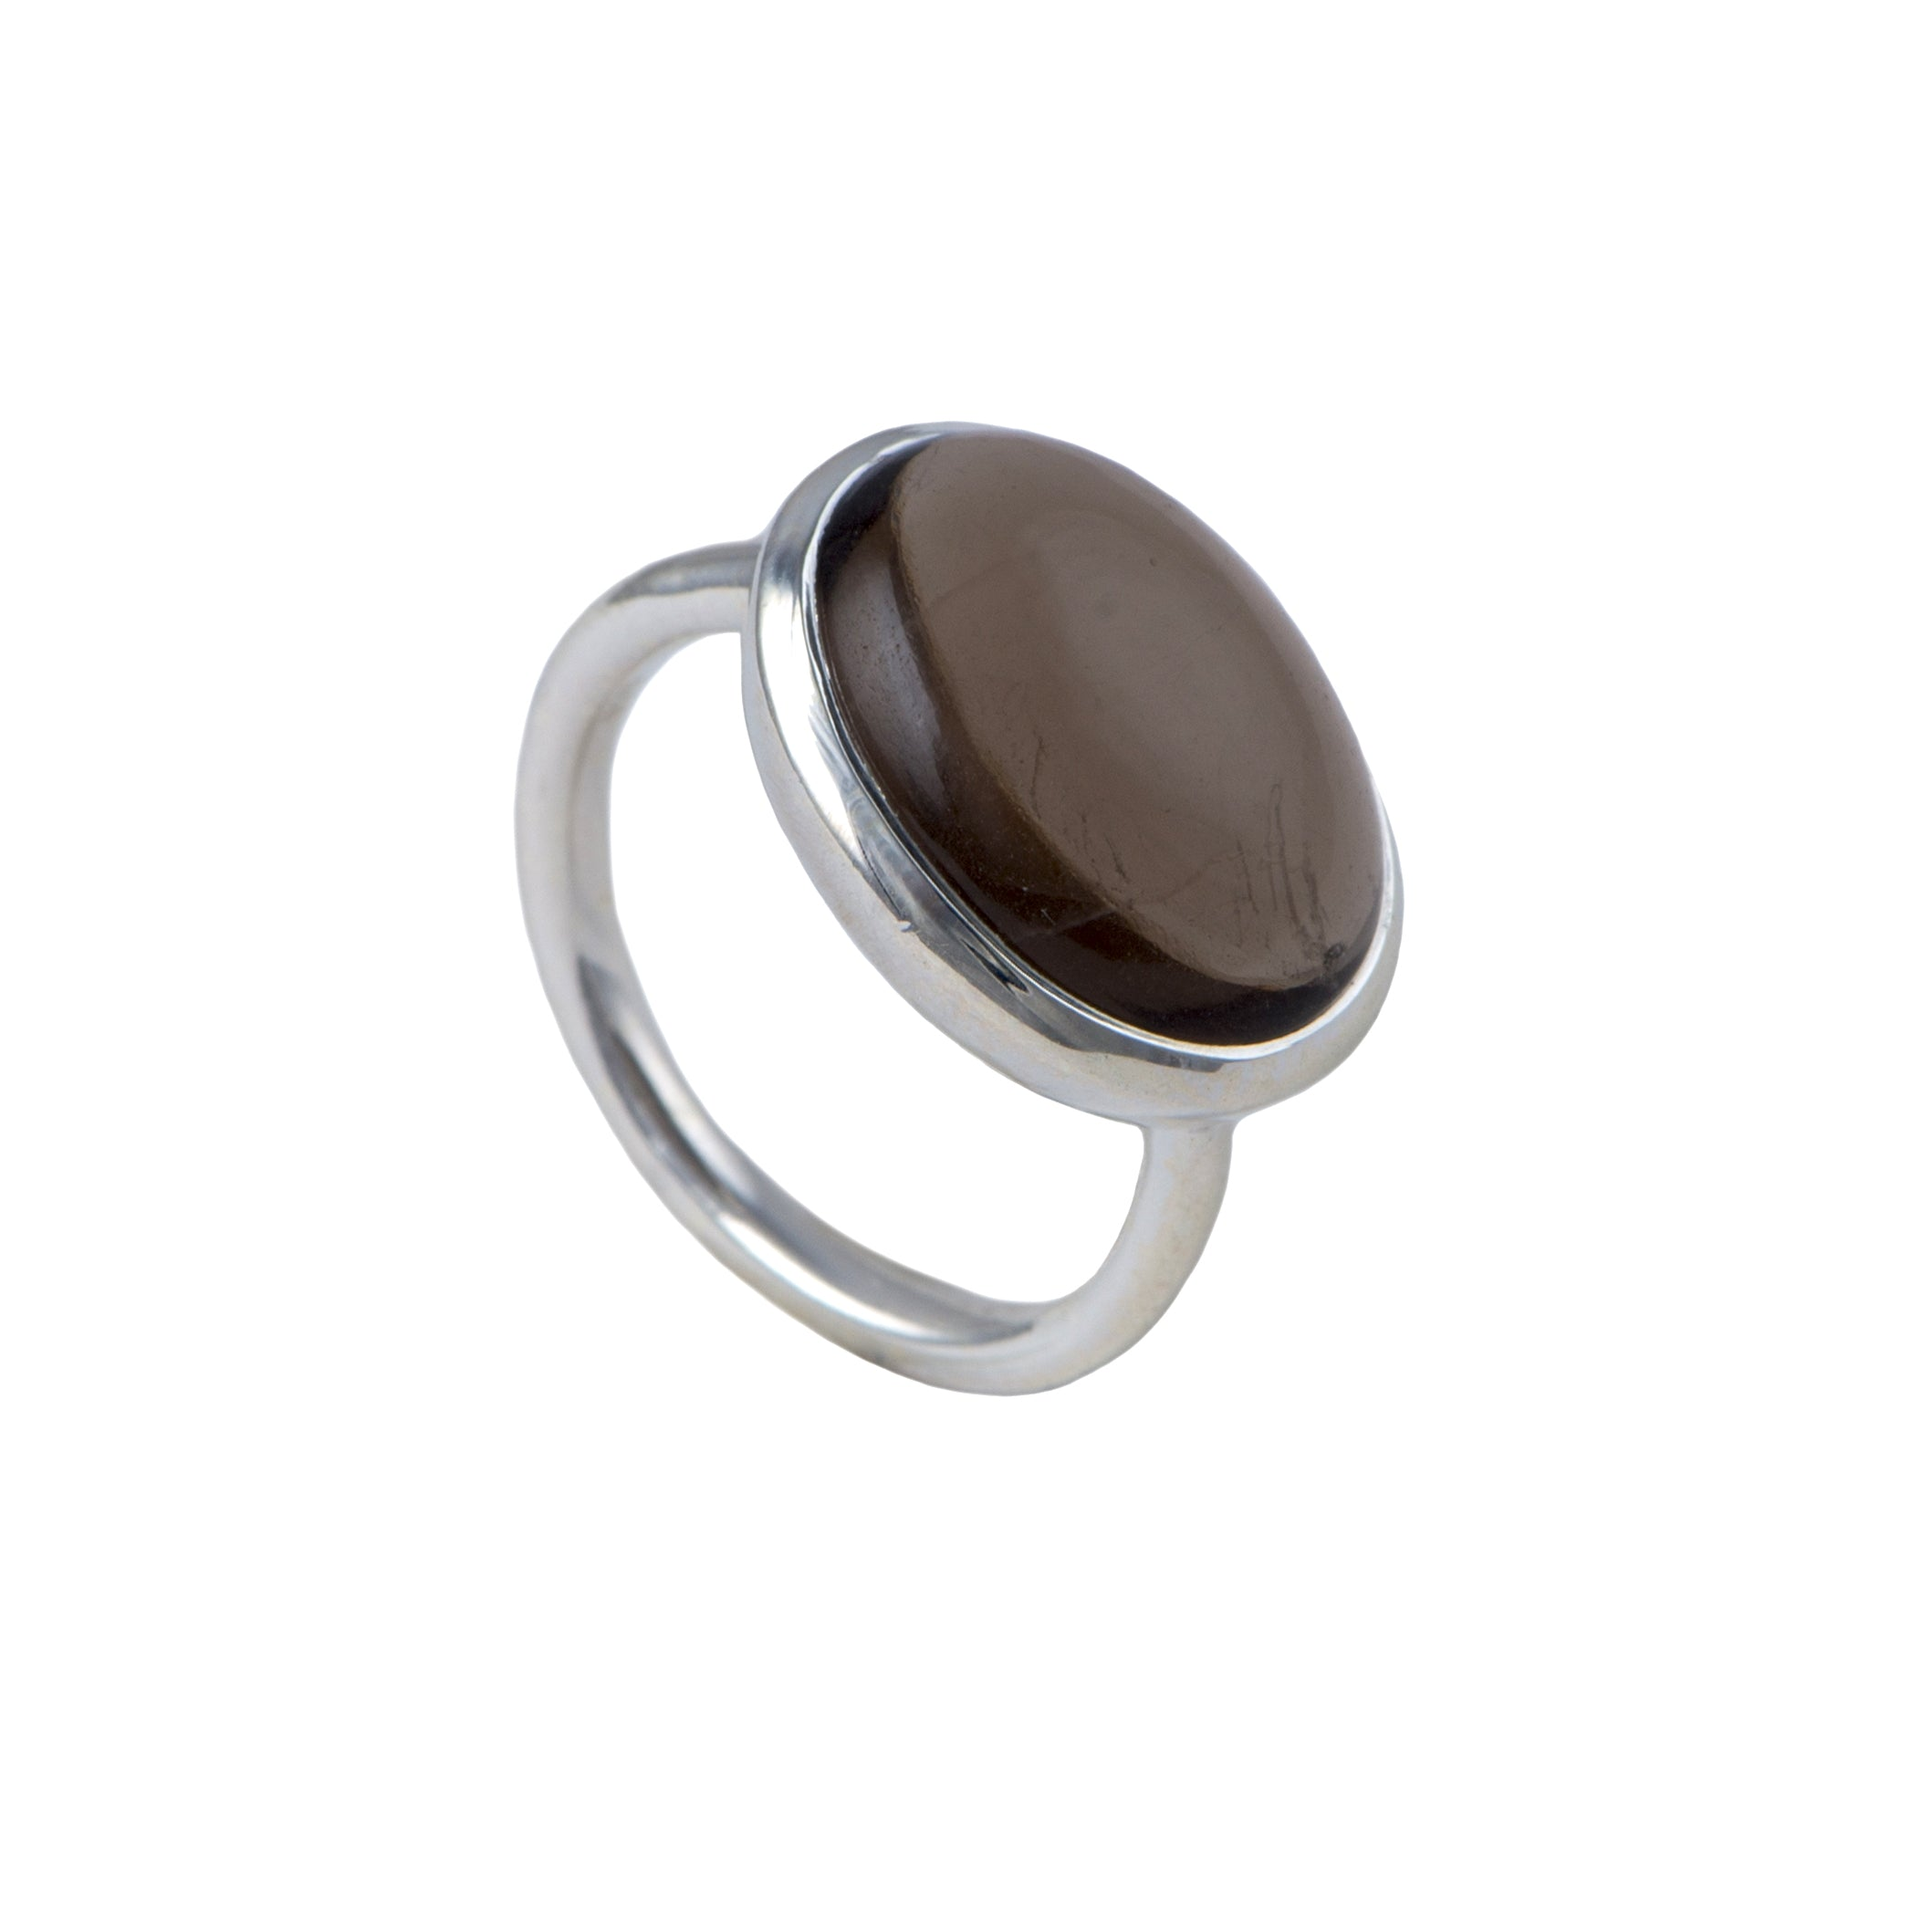 Cabochon Oval Cut Natural Gemstone Sterling Silver Ring - Smoky Quartz